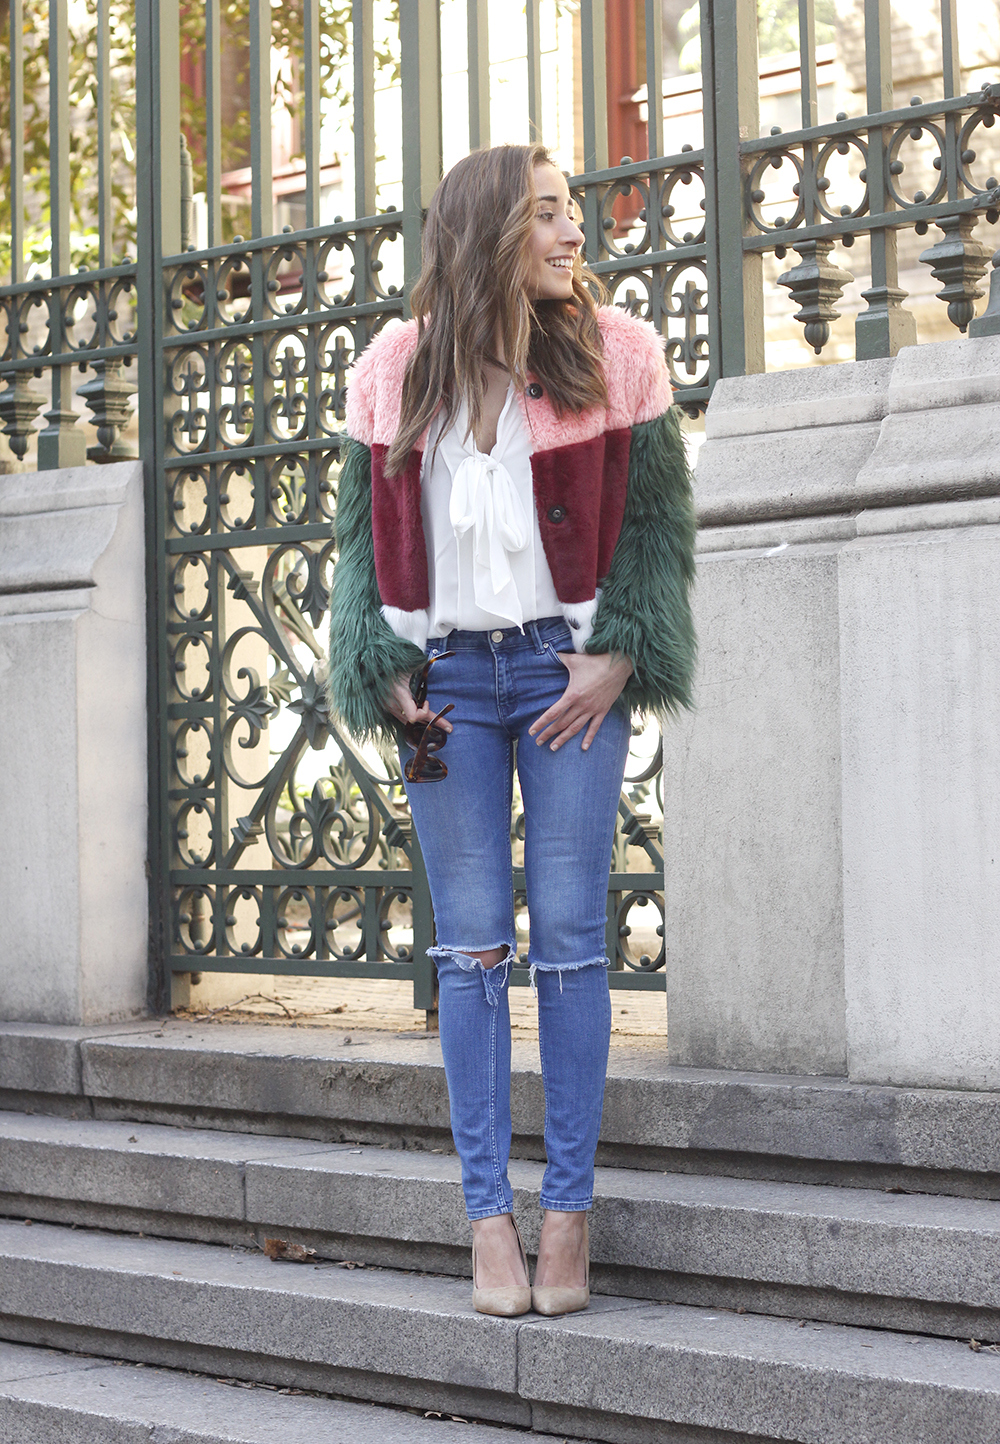 Faur fux coat white shirt ripped jeans heels street style fashion outfit access01